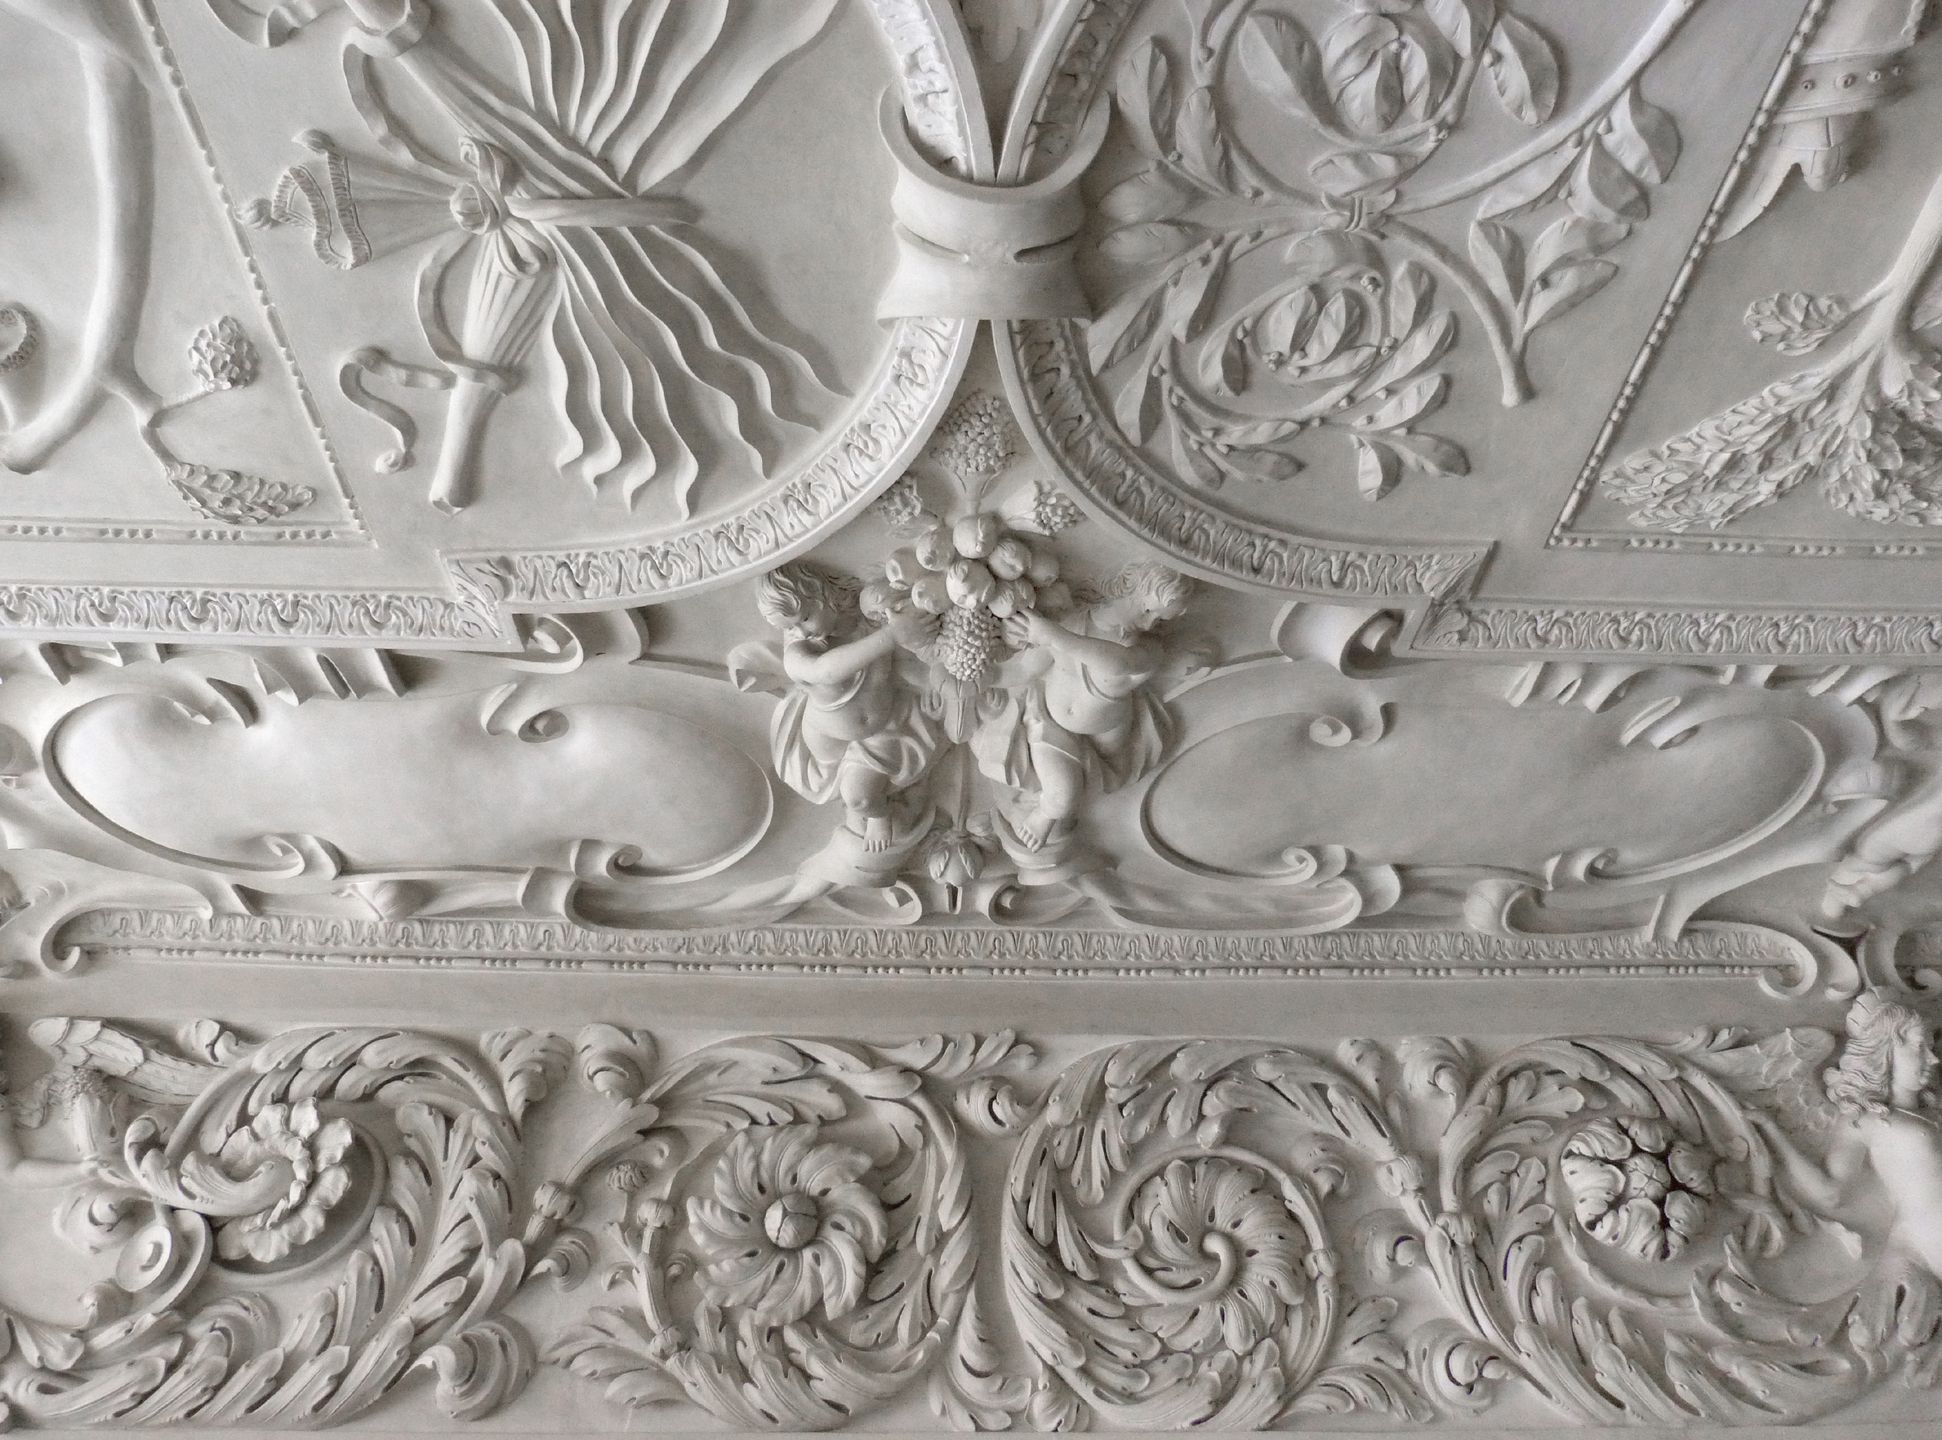 Stuccoed ceiling in the Fembo house Central southern acanthus cornice with part of the ceiling